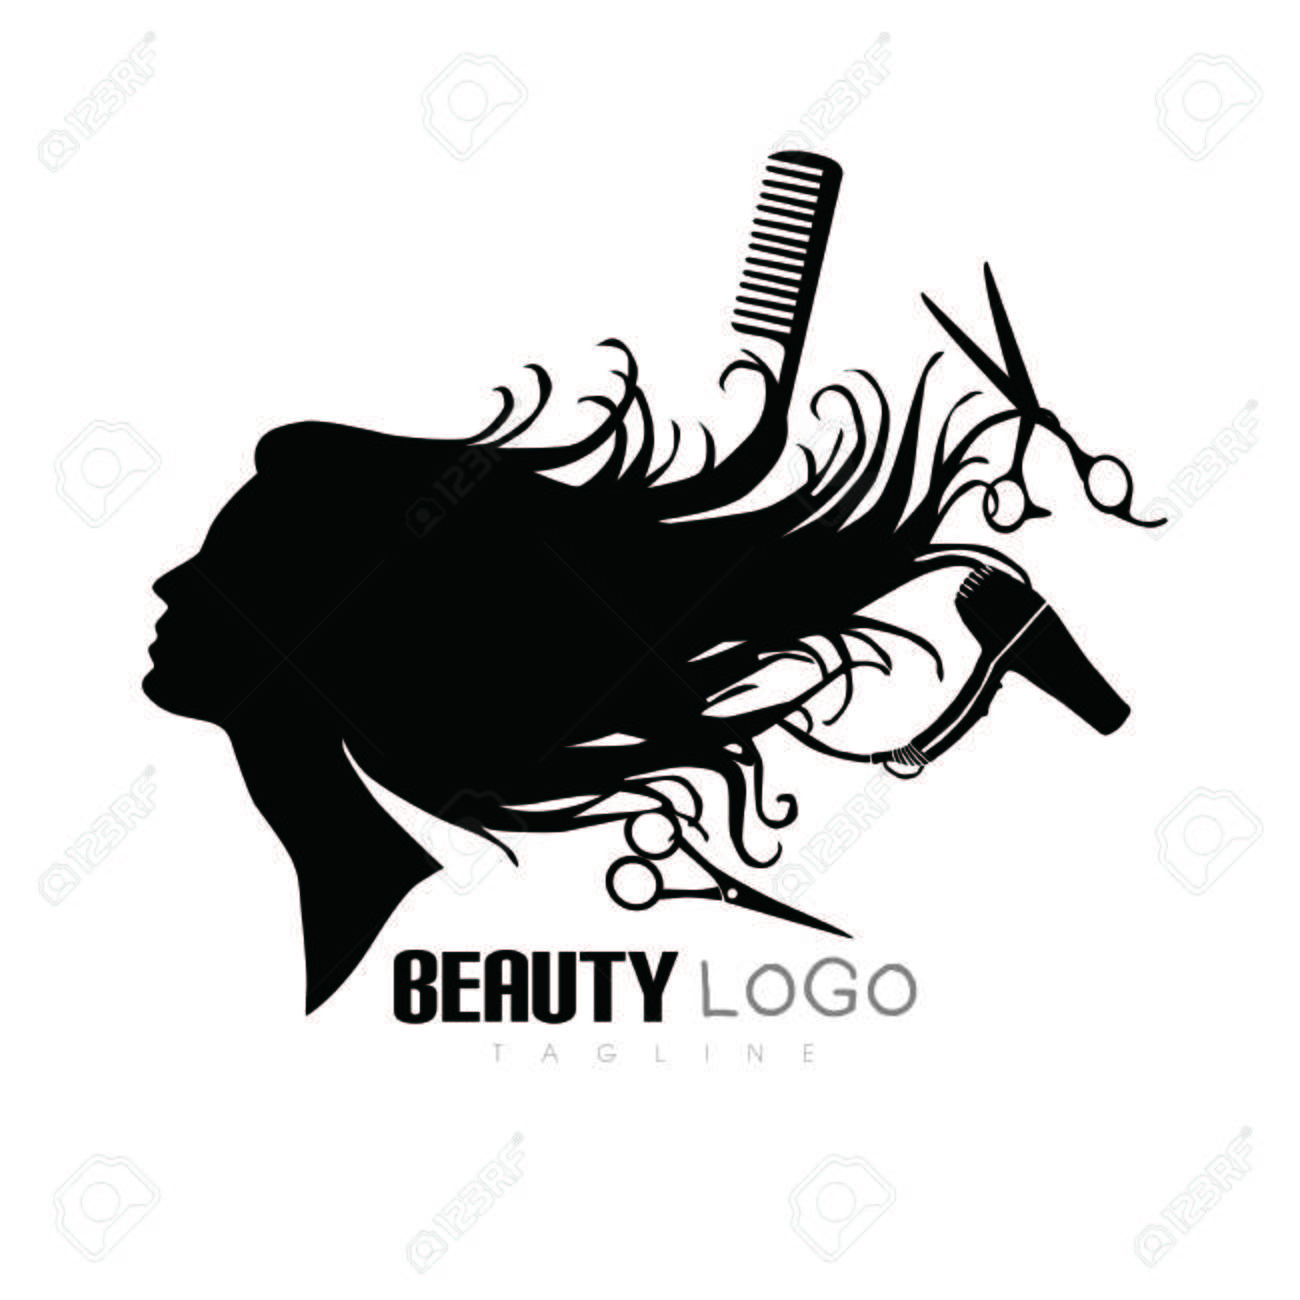 Stock Vector in 2020 Hair salon logos, Hair, beauty